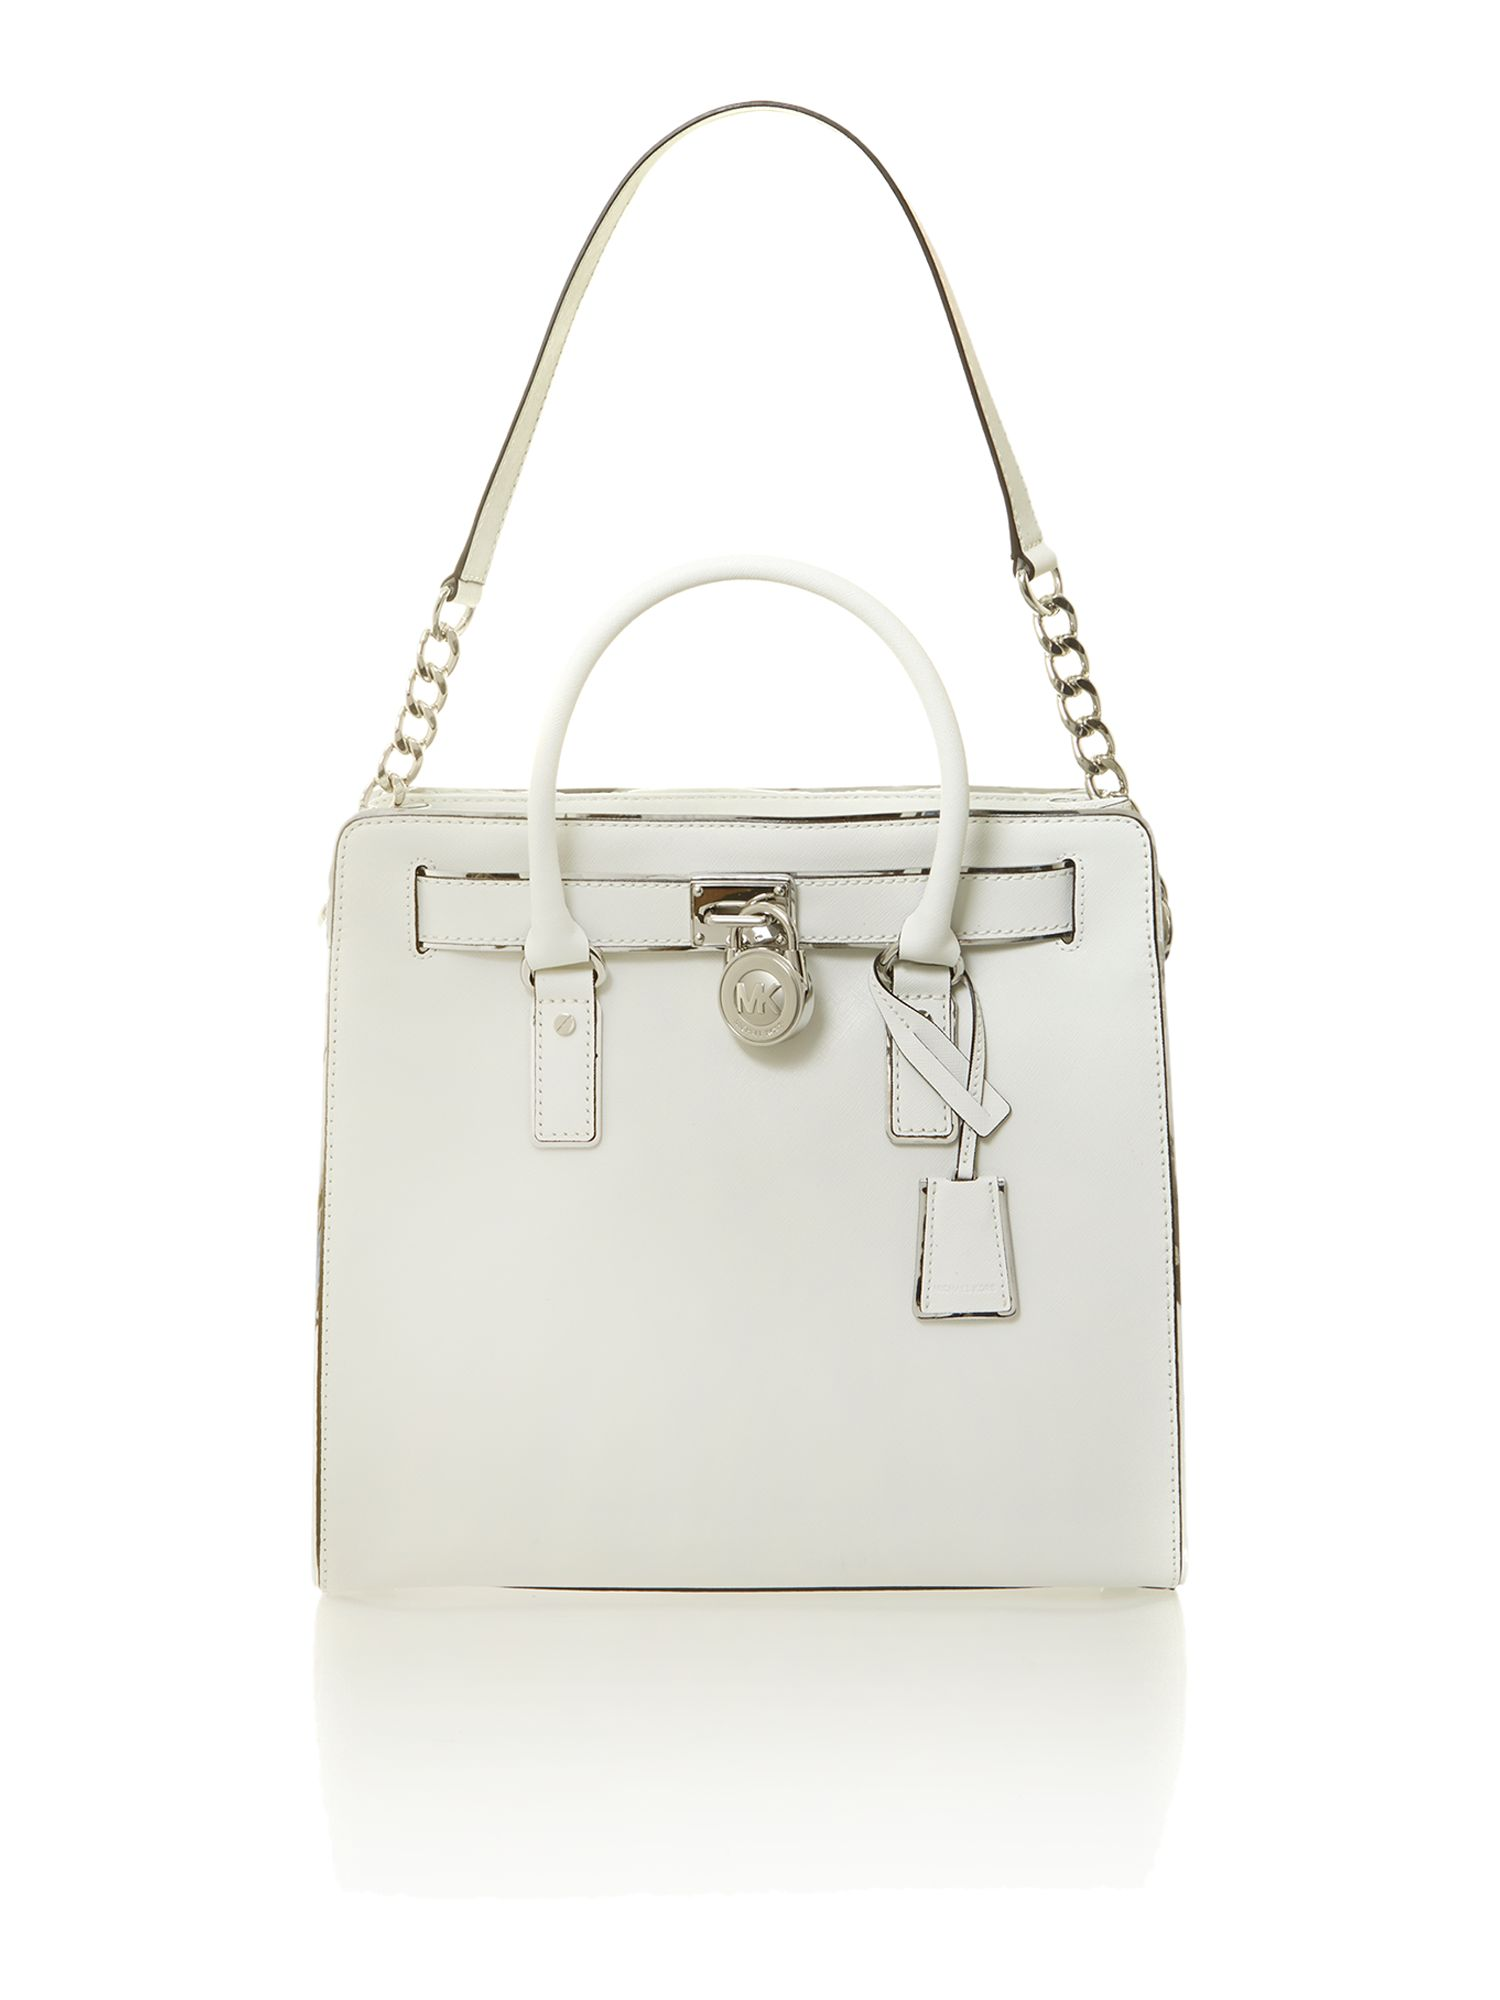 Hamilton large white tote bag